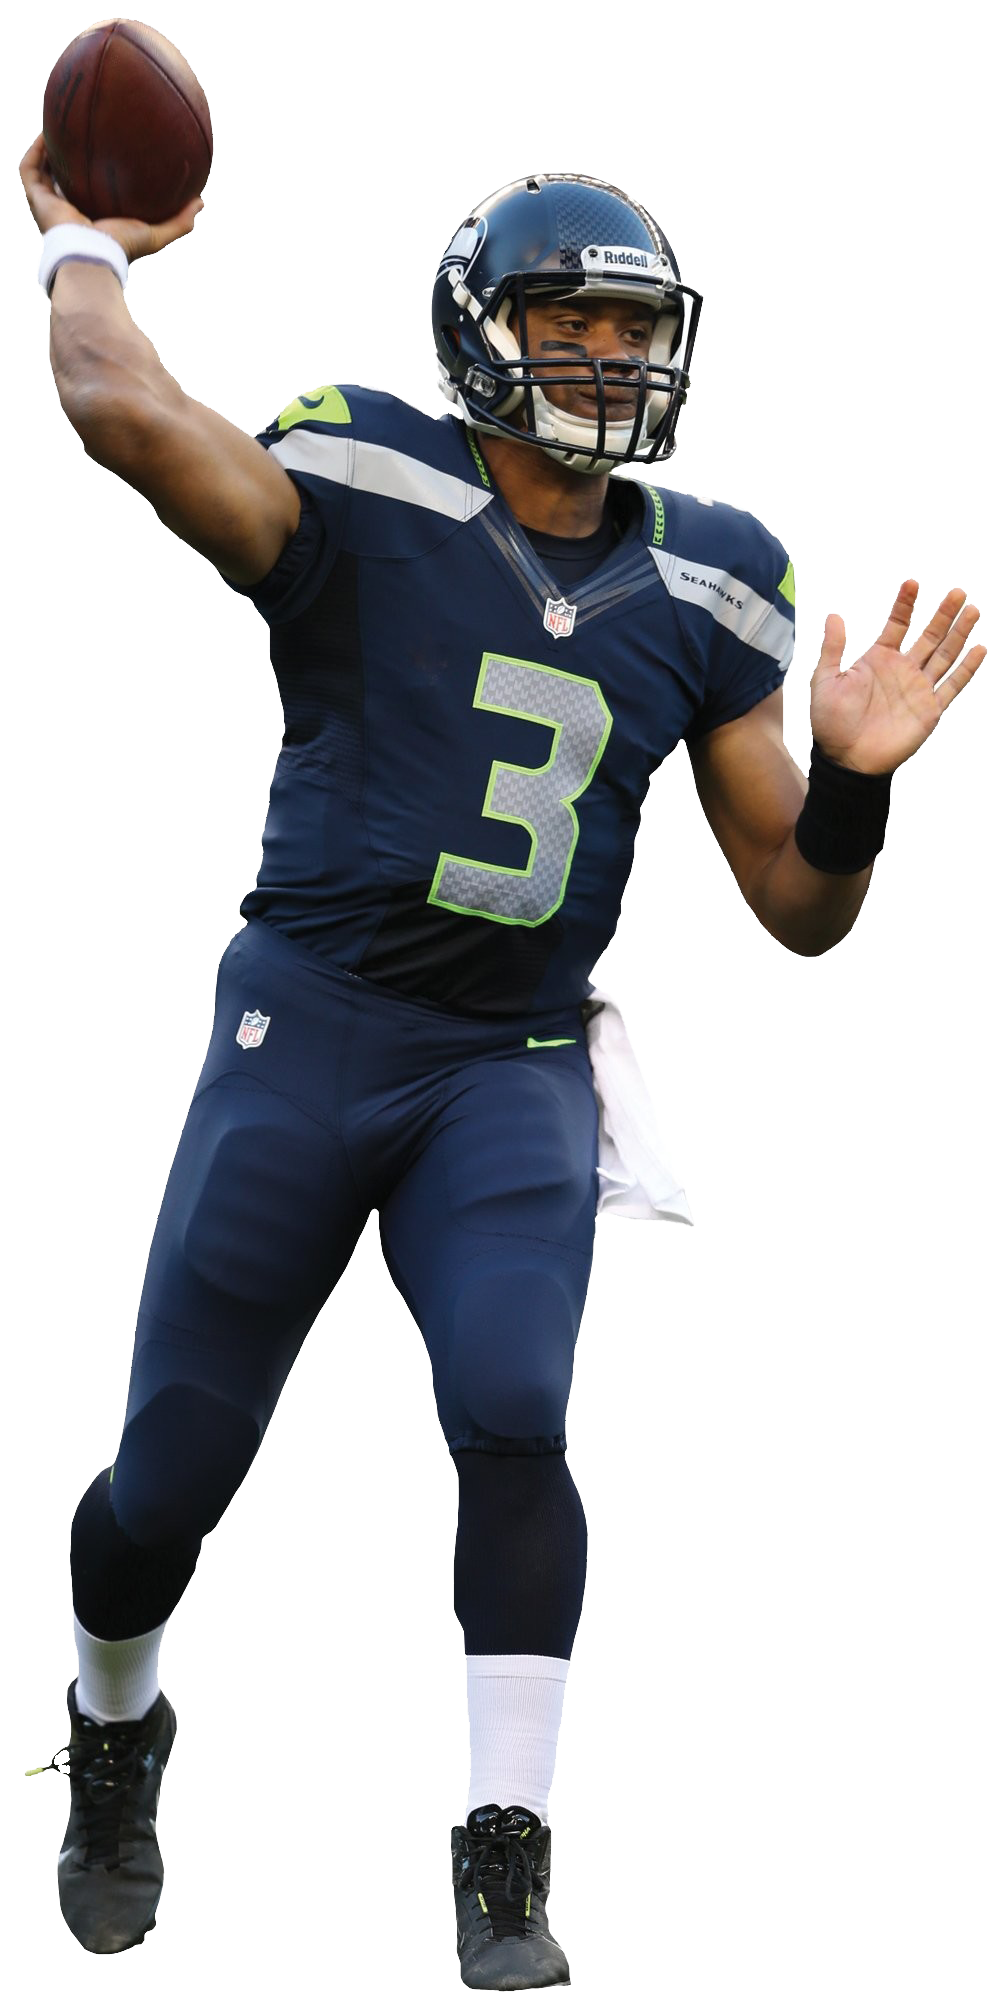 Russell Wilson Png (100+ images in Collection) Page 1.